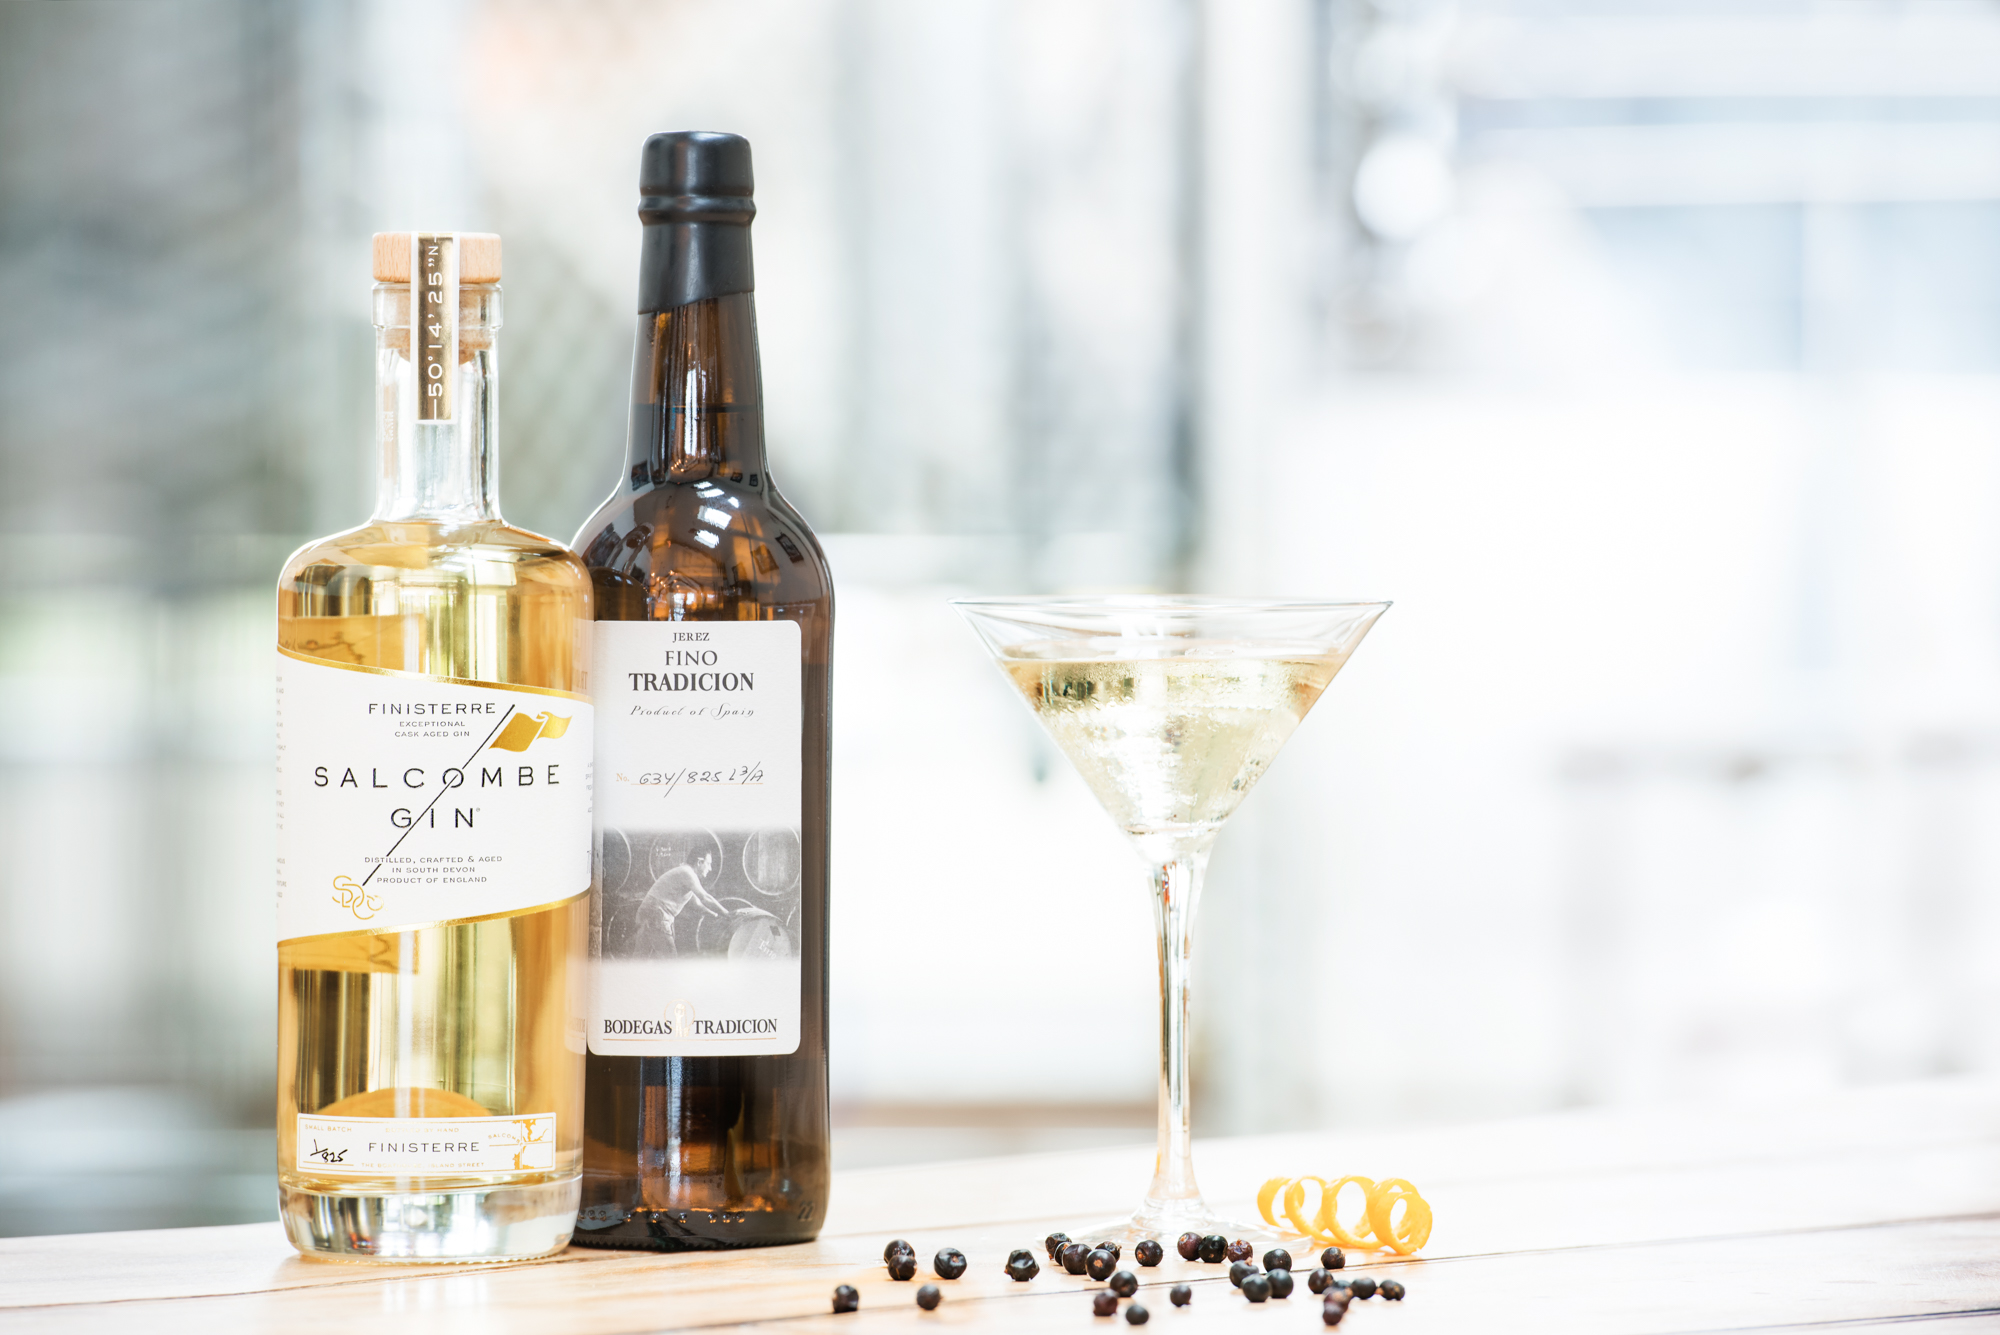 Salcombe Gin Finistini Cocktail made with Aged gin and Fino sherry